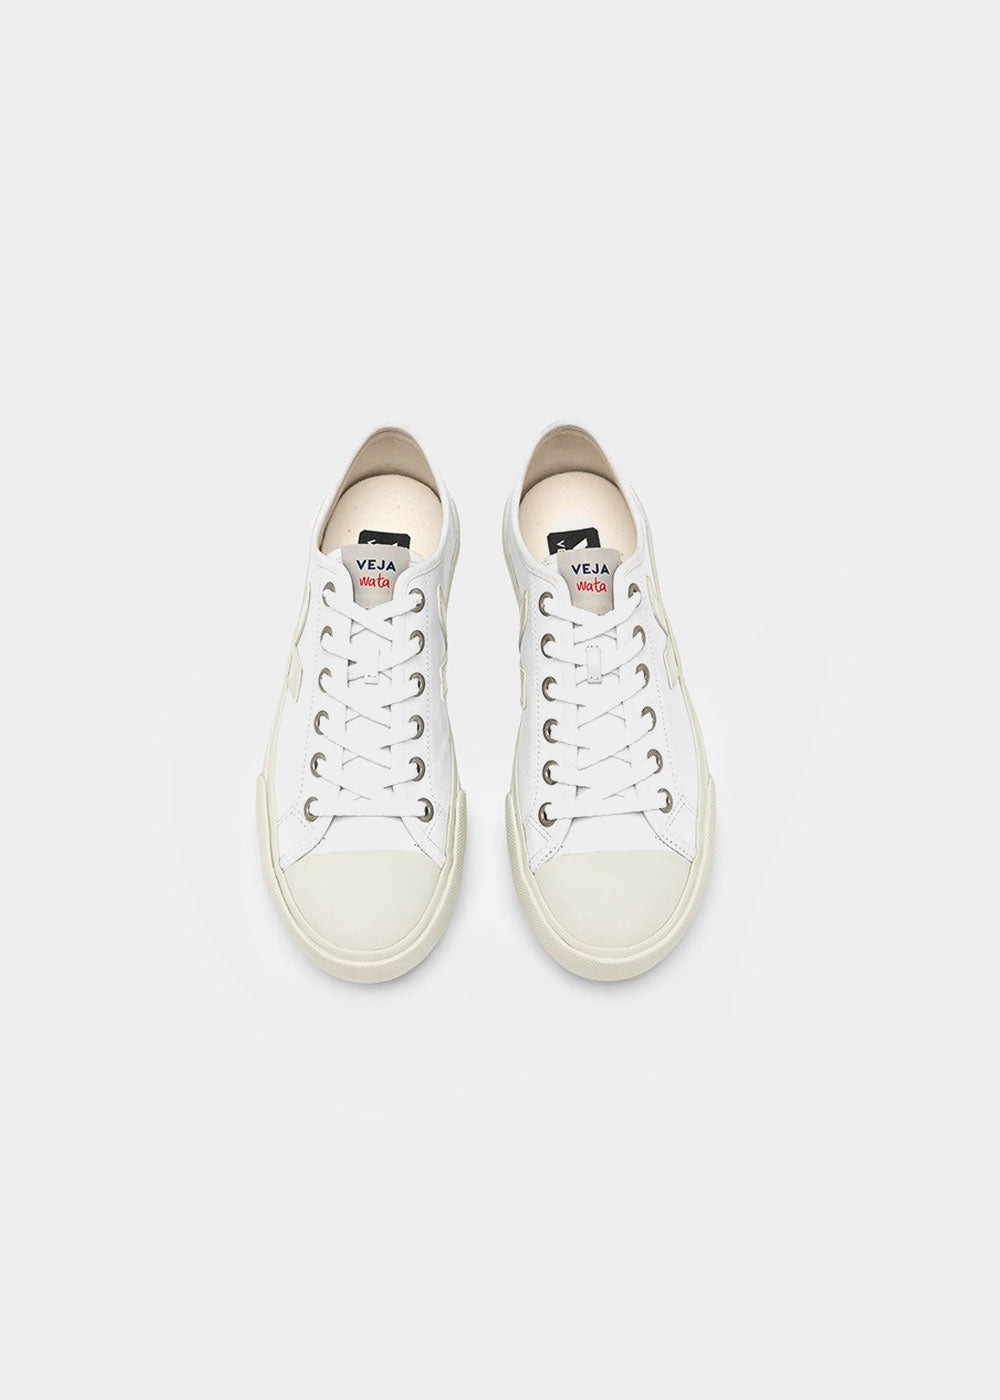 Veja Leather Wata Pierre Sneaker — New Classics Studios